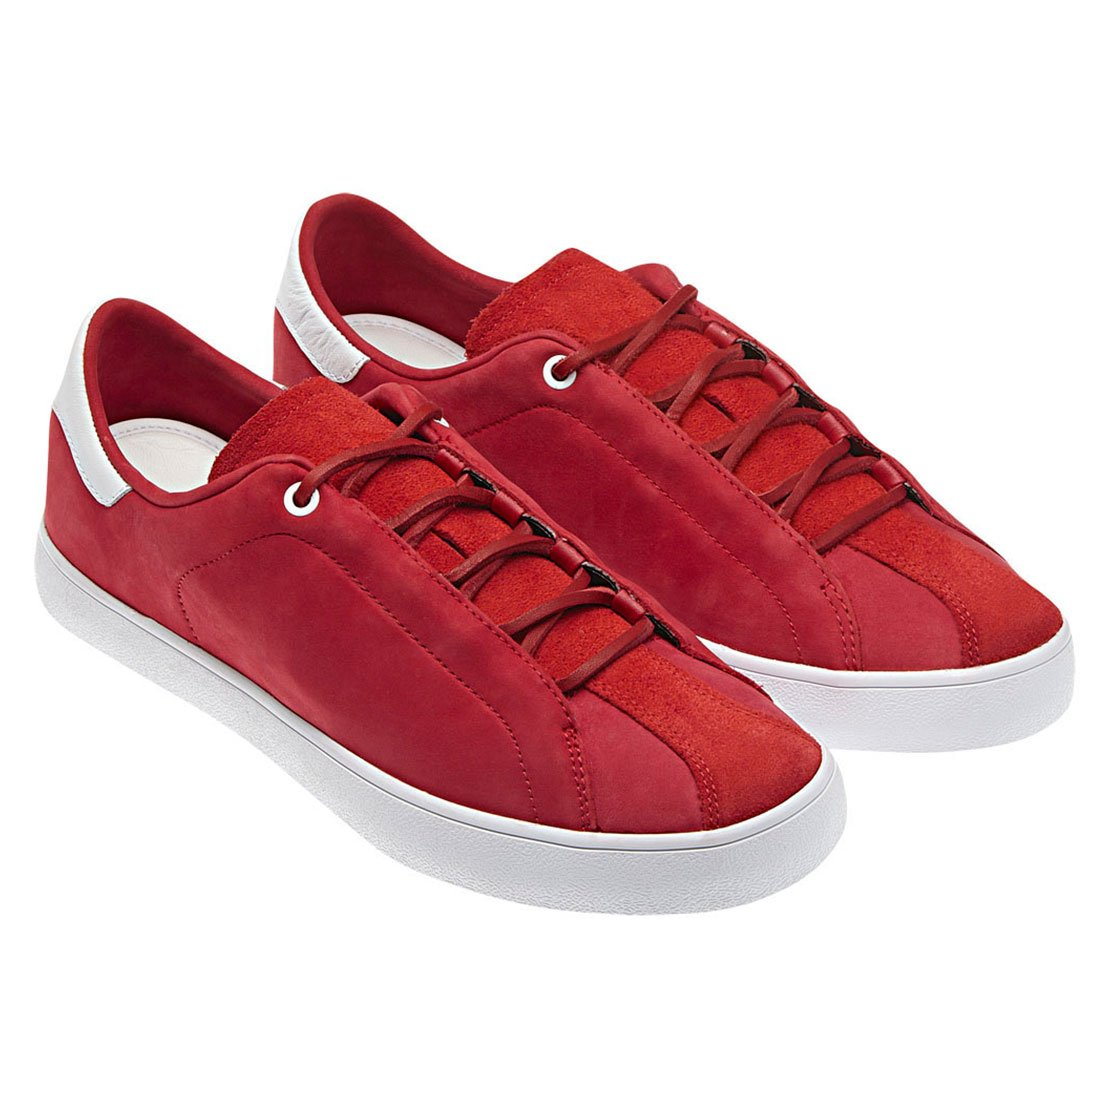 on sale a7085 8d4a3 Amazon.com | adidas ObyO Doley DB (Light Scarlet/runninwhite ...